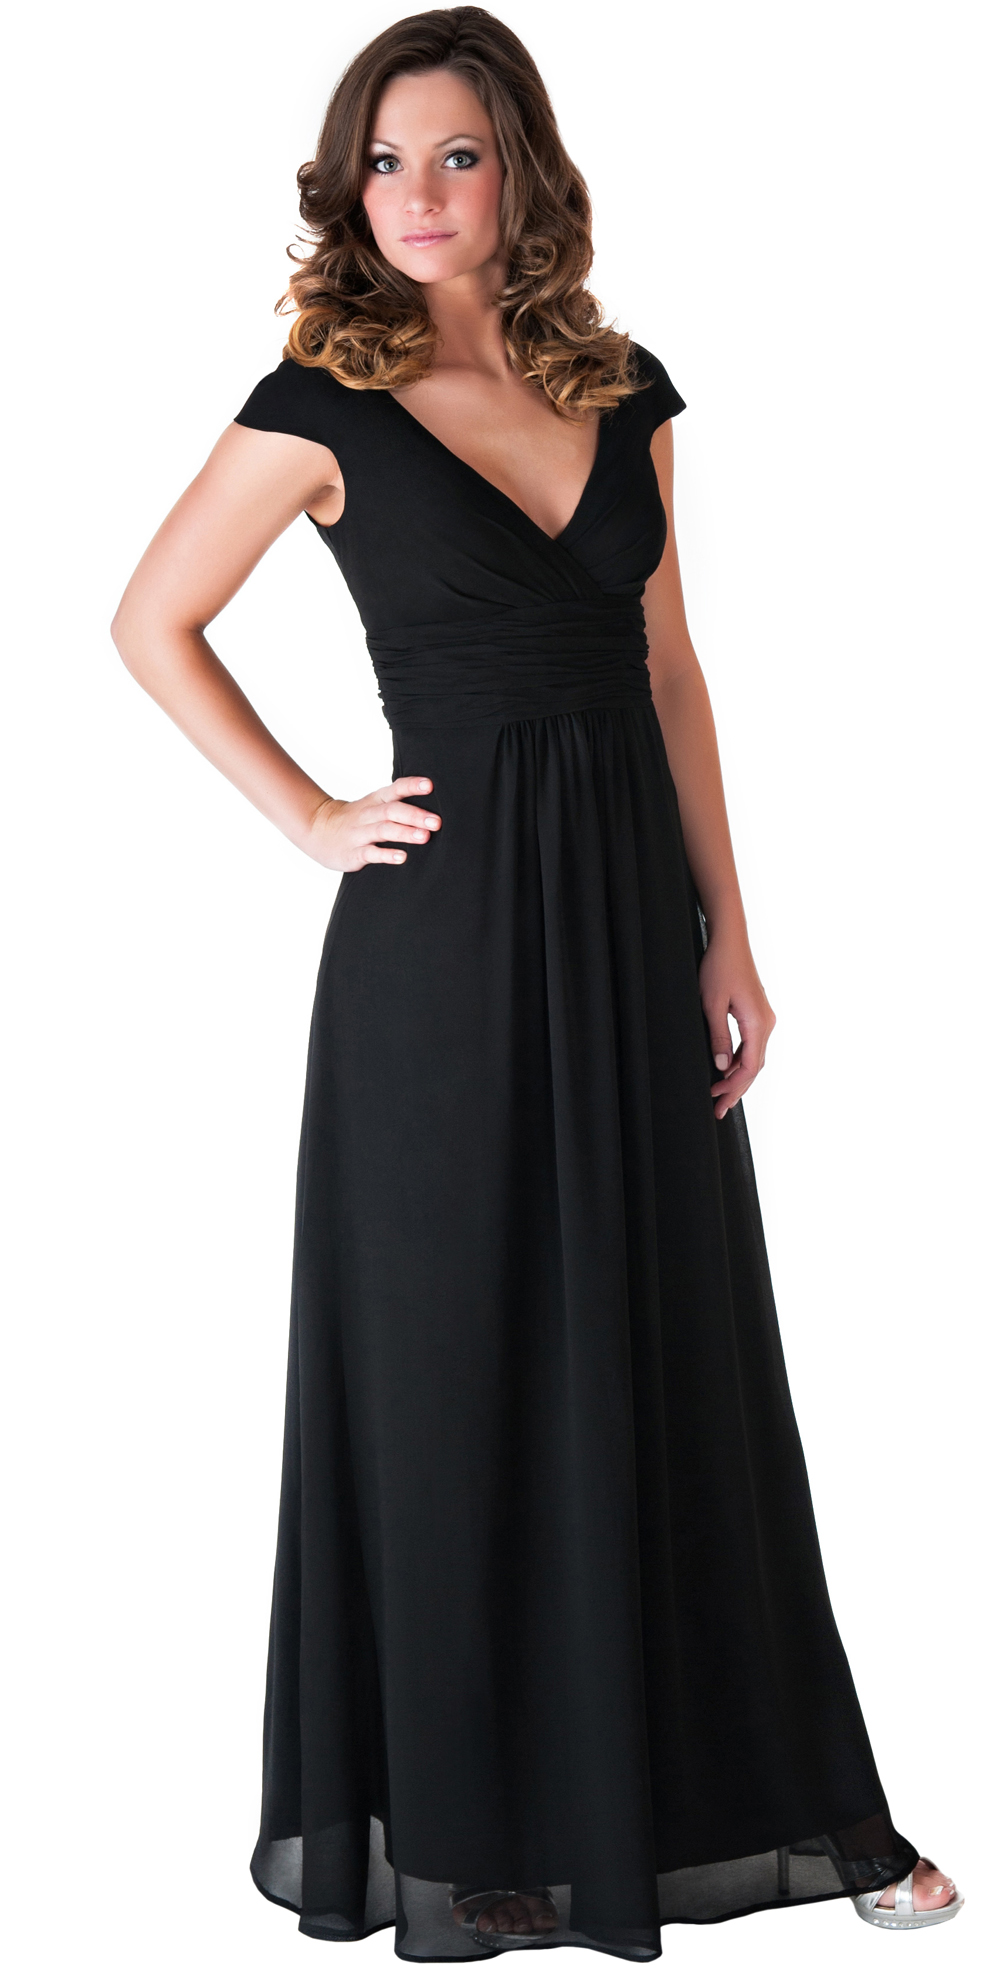 Formal dress elegant women long evening gown bridesmaid for Women s dresses for weddings